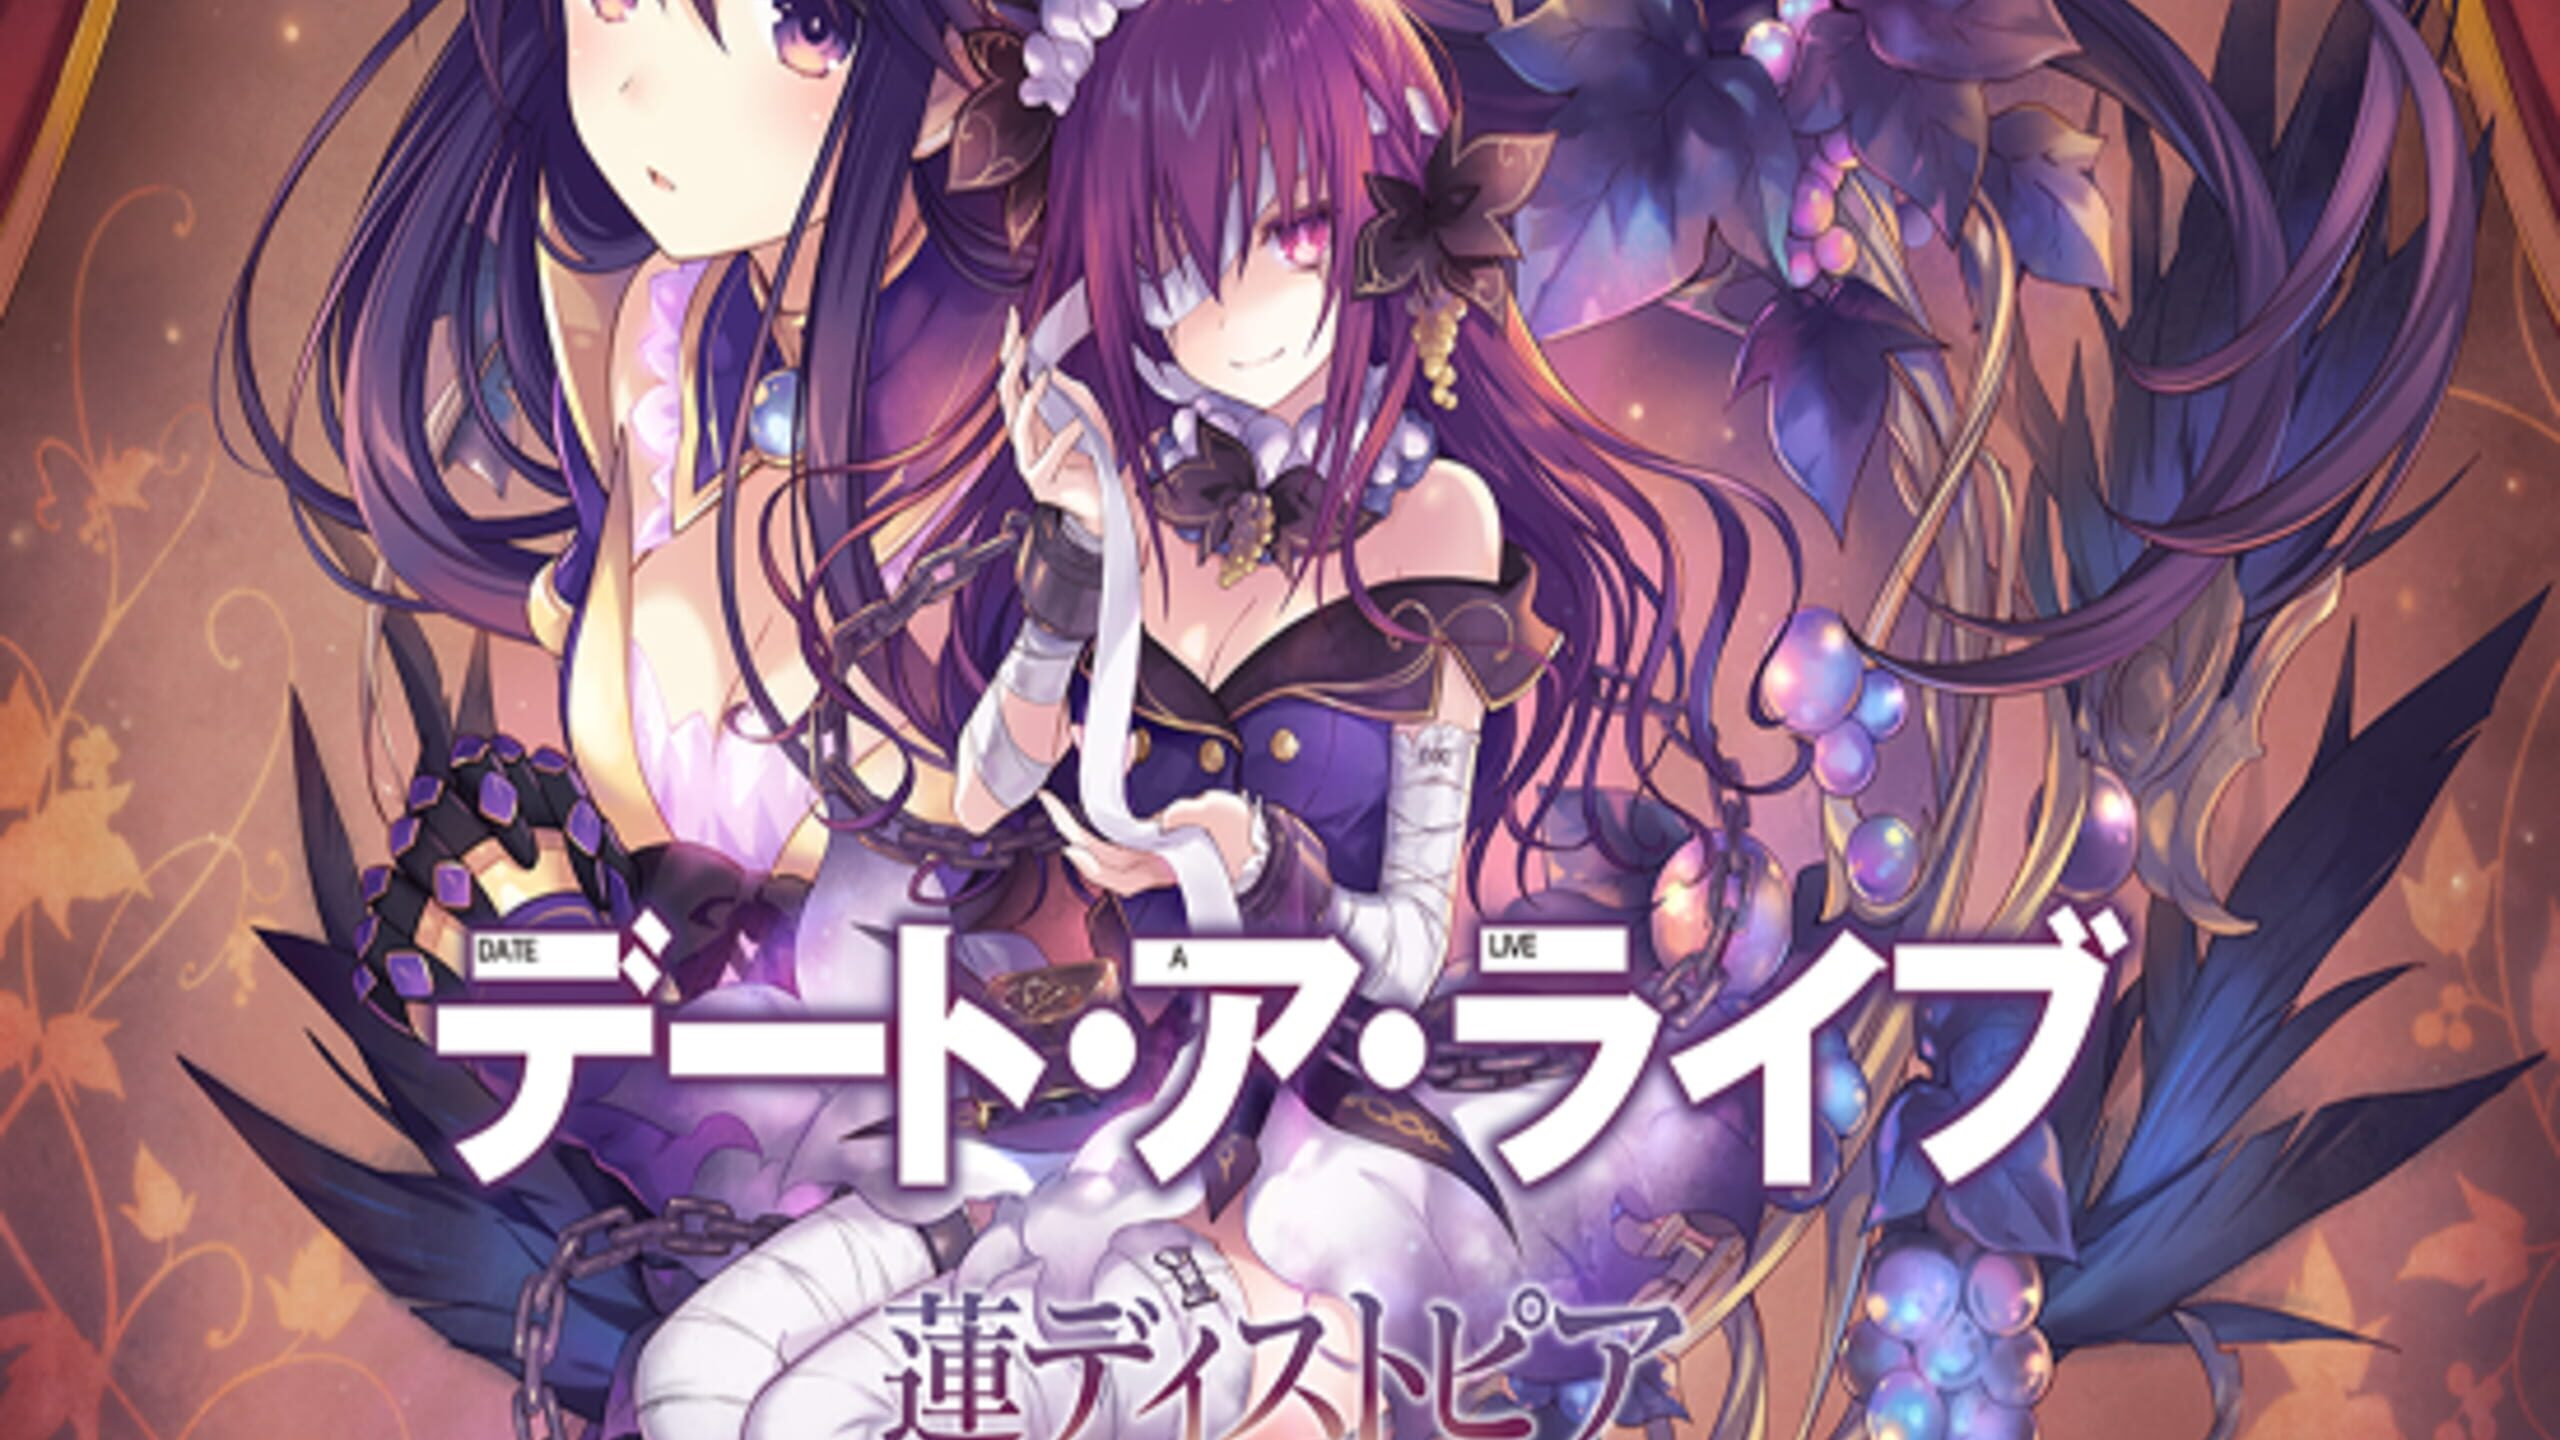 game cover art for Date A Live: Ren Dystopia